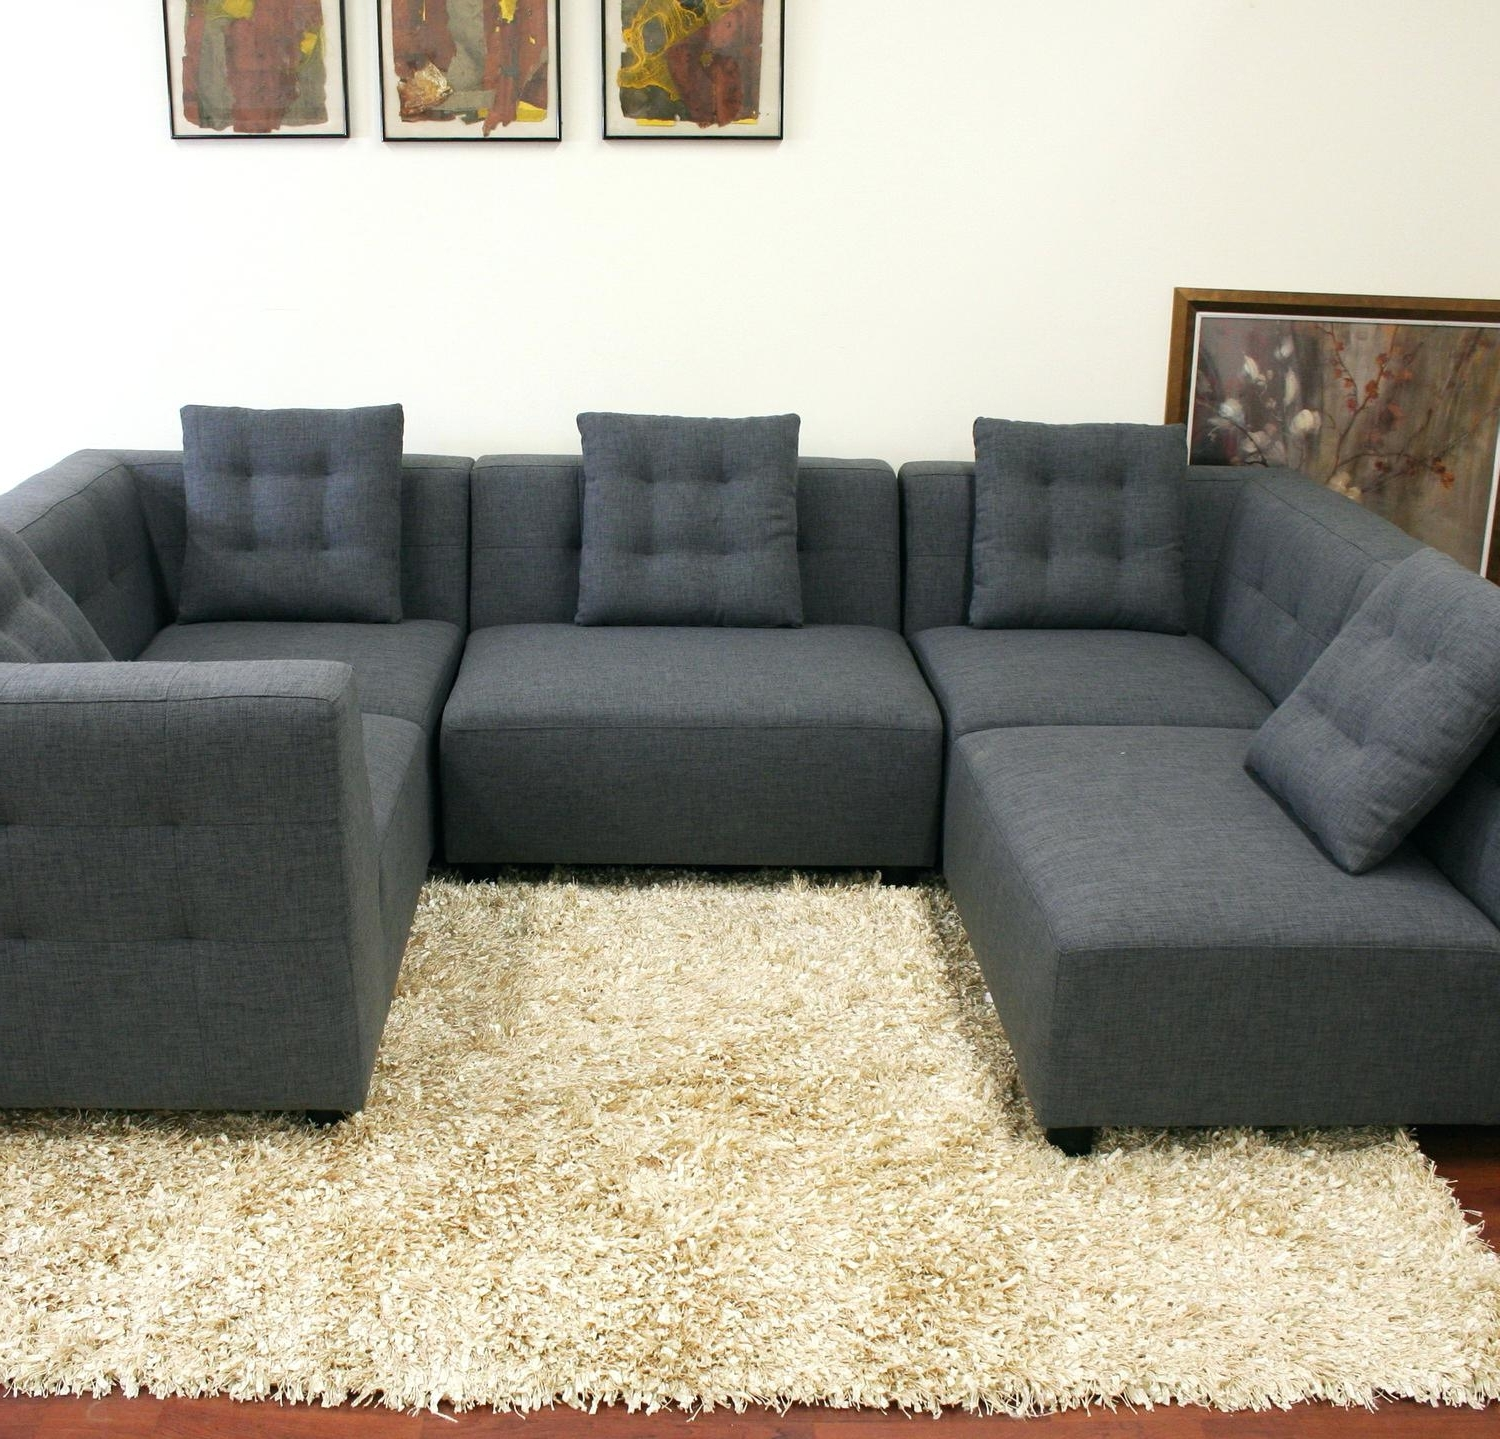 Sectional Sofas For Sale Clearance Canada Couch Ottawa Kijiji With Widely Used Kijiji Ottawa Sectional Sofas (View 6 of 15)